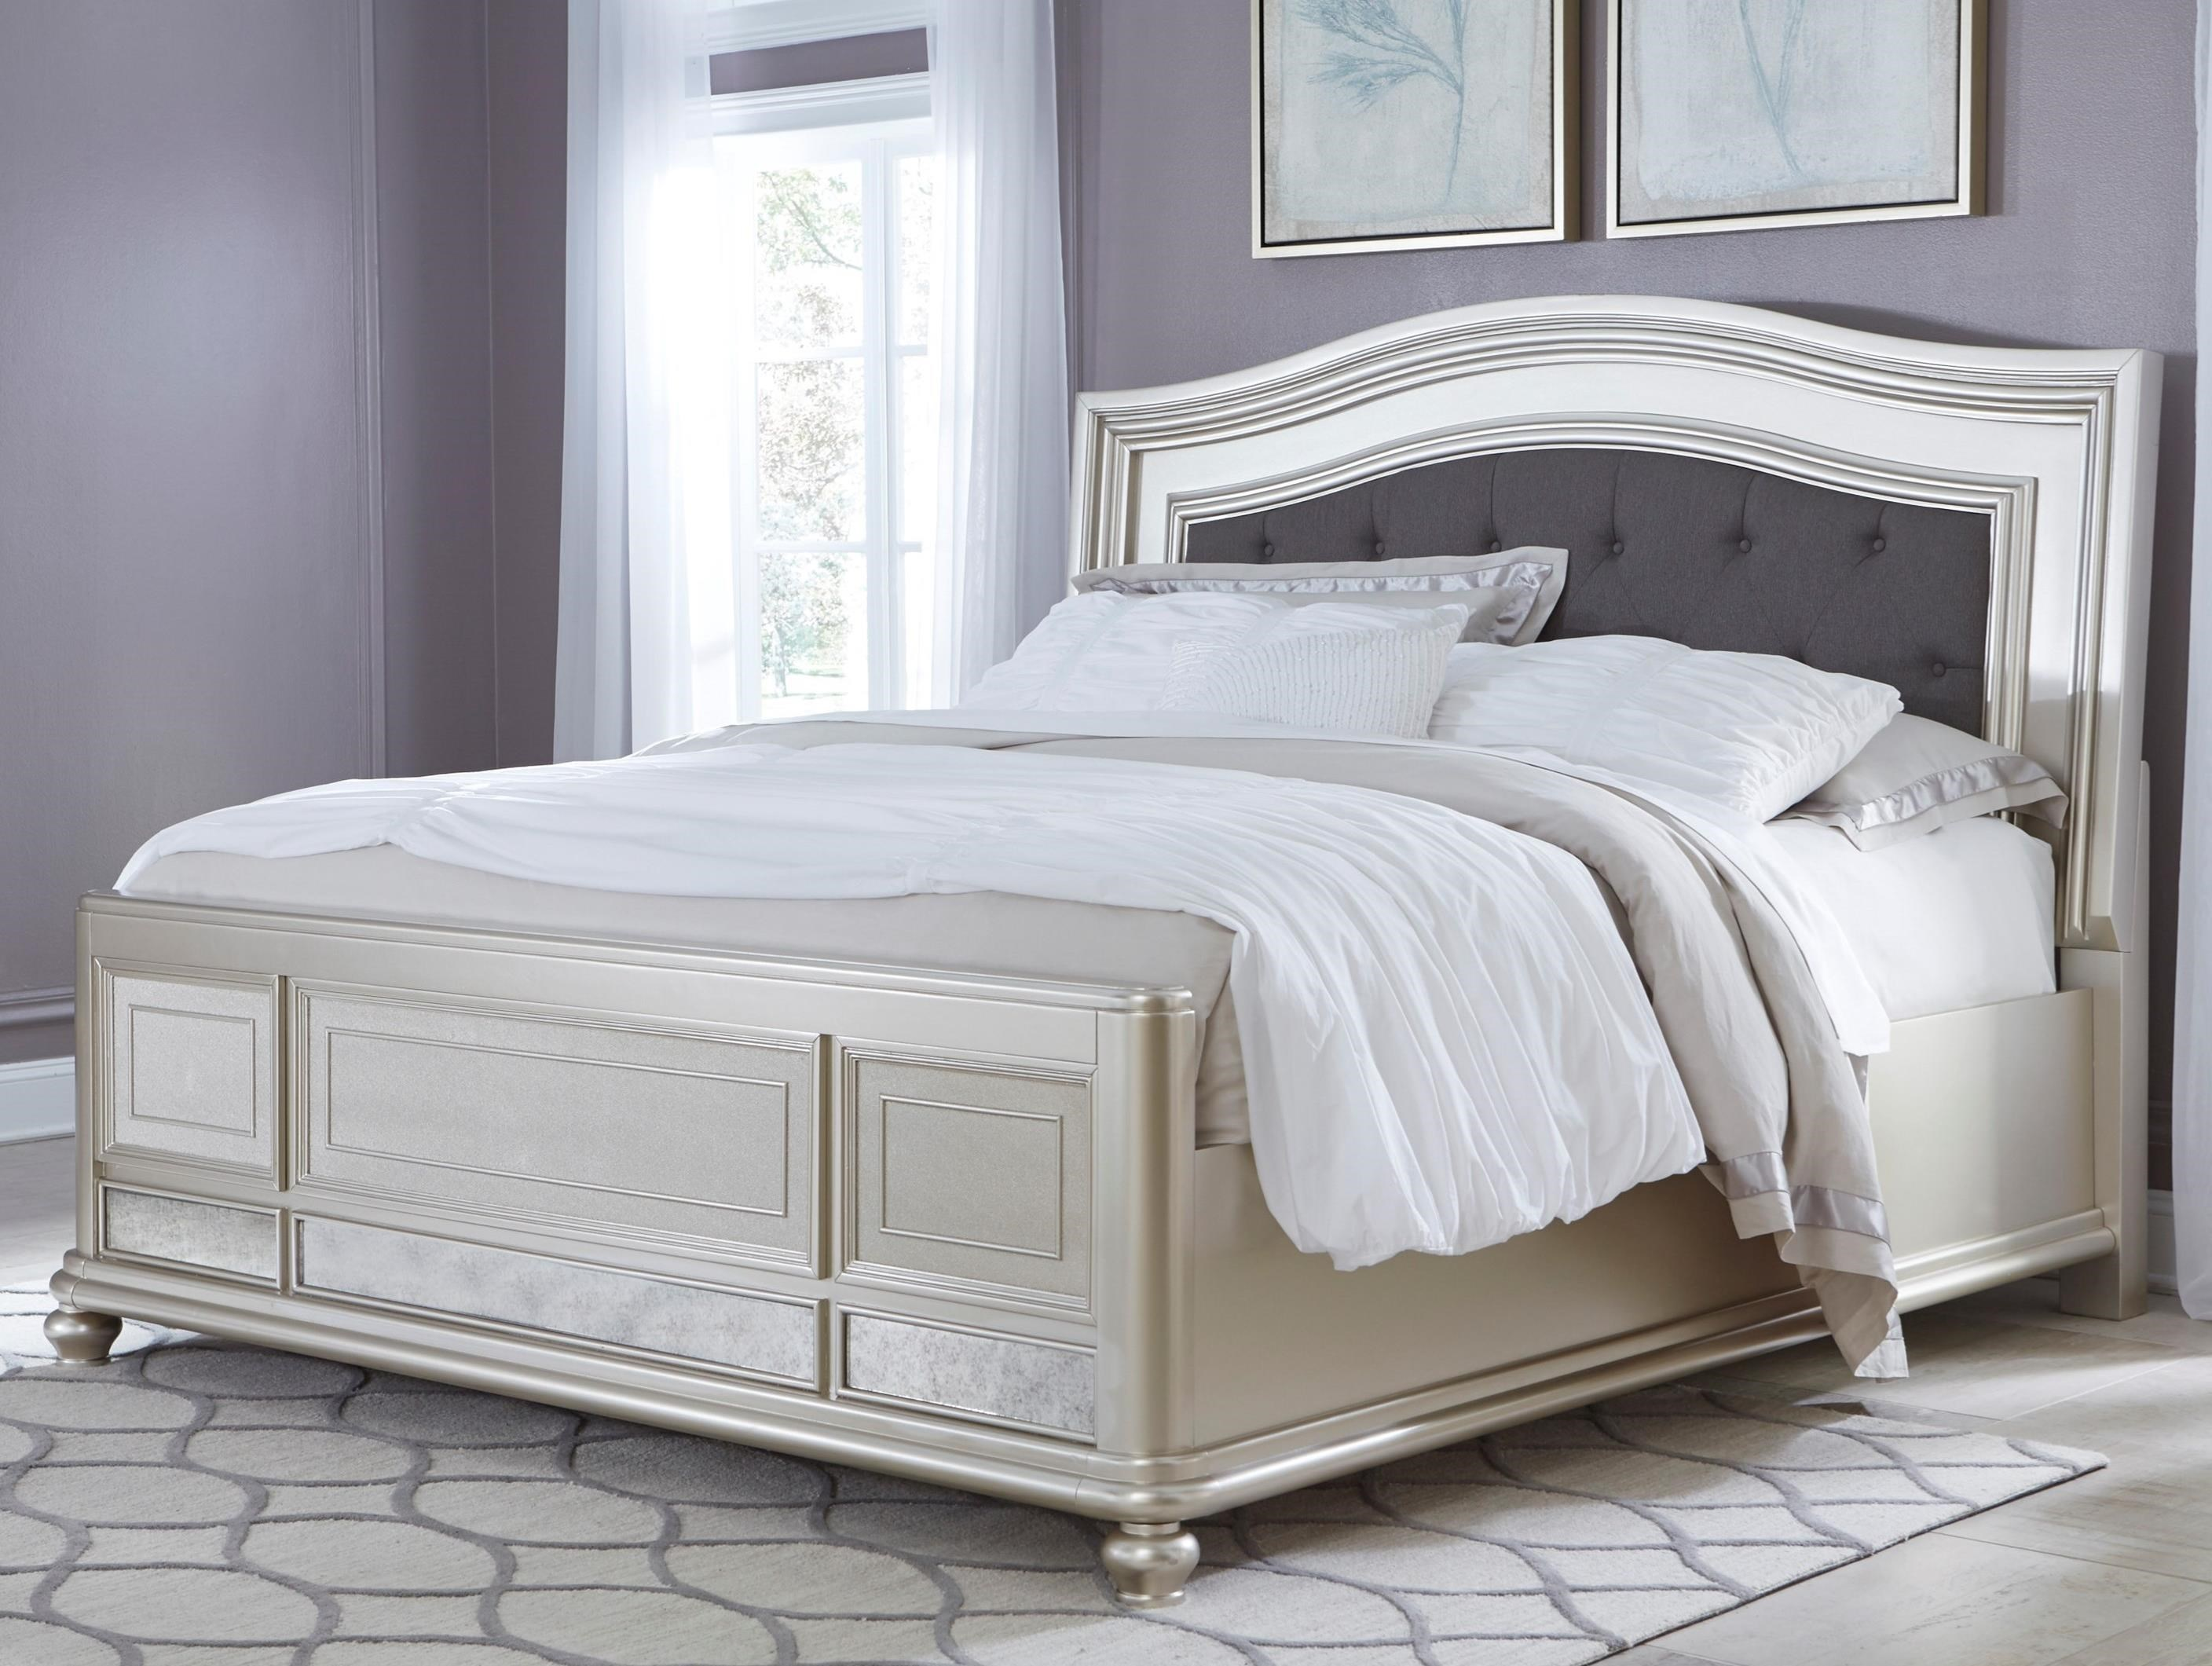 King Panel Bed With Arched Upholstered Headboard And Silver Finish Frame By Signature Design By